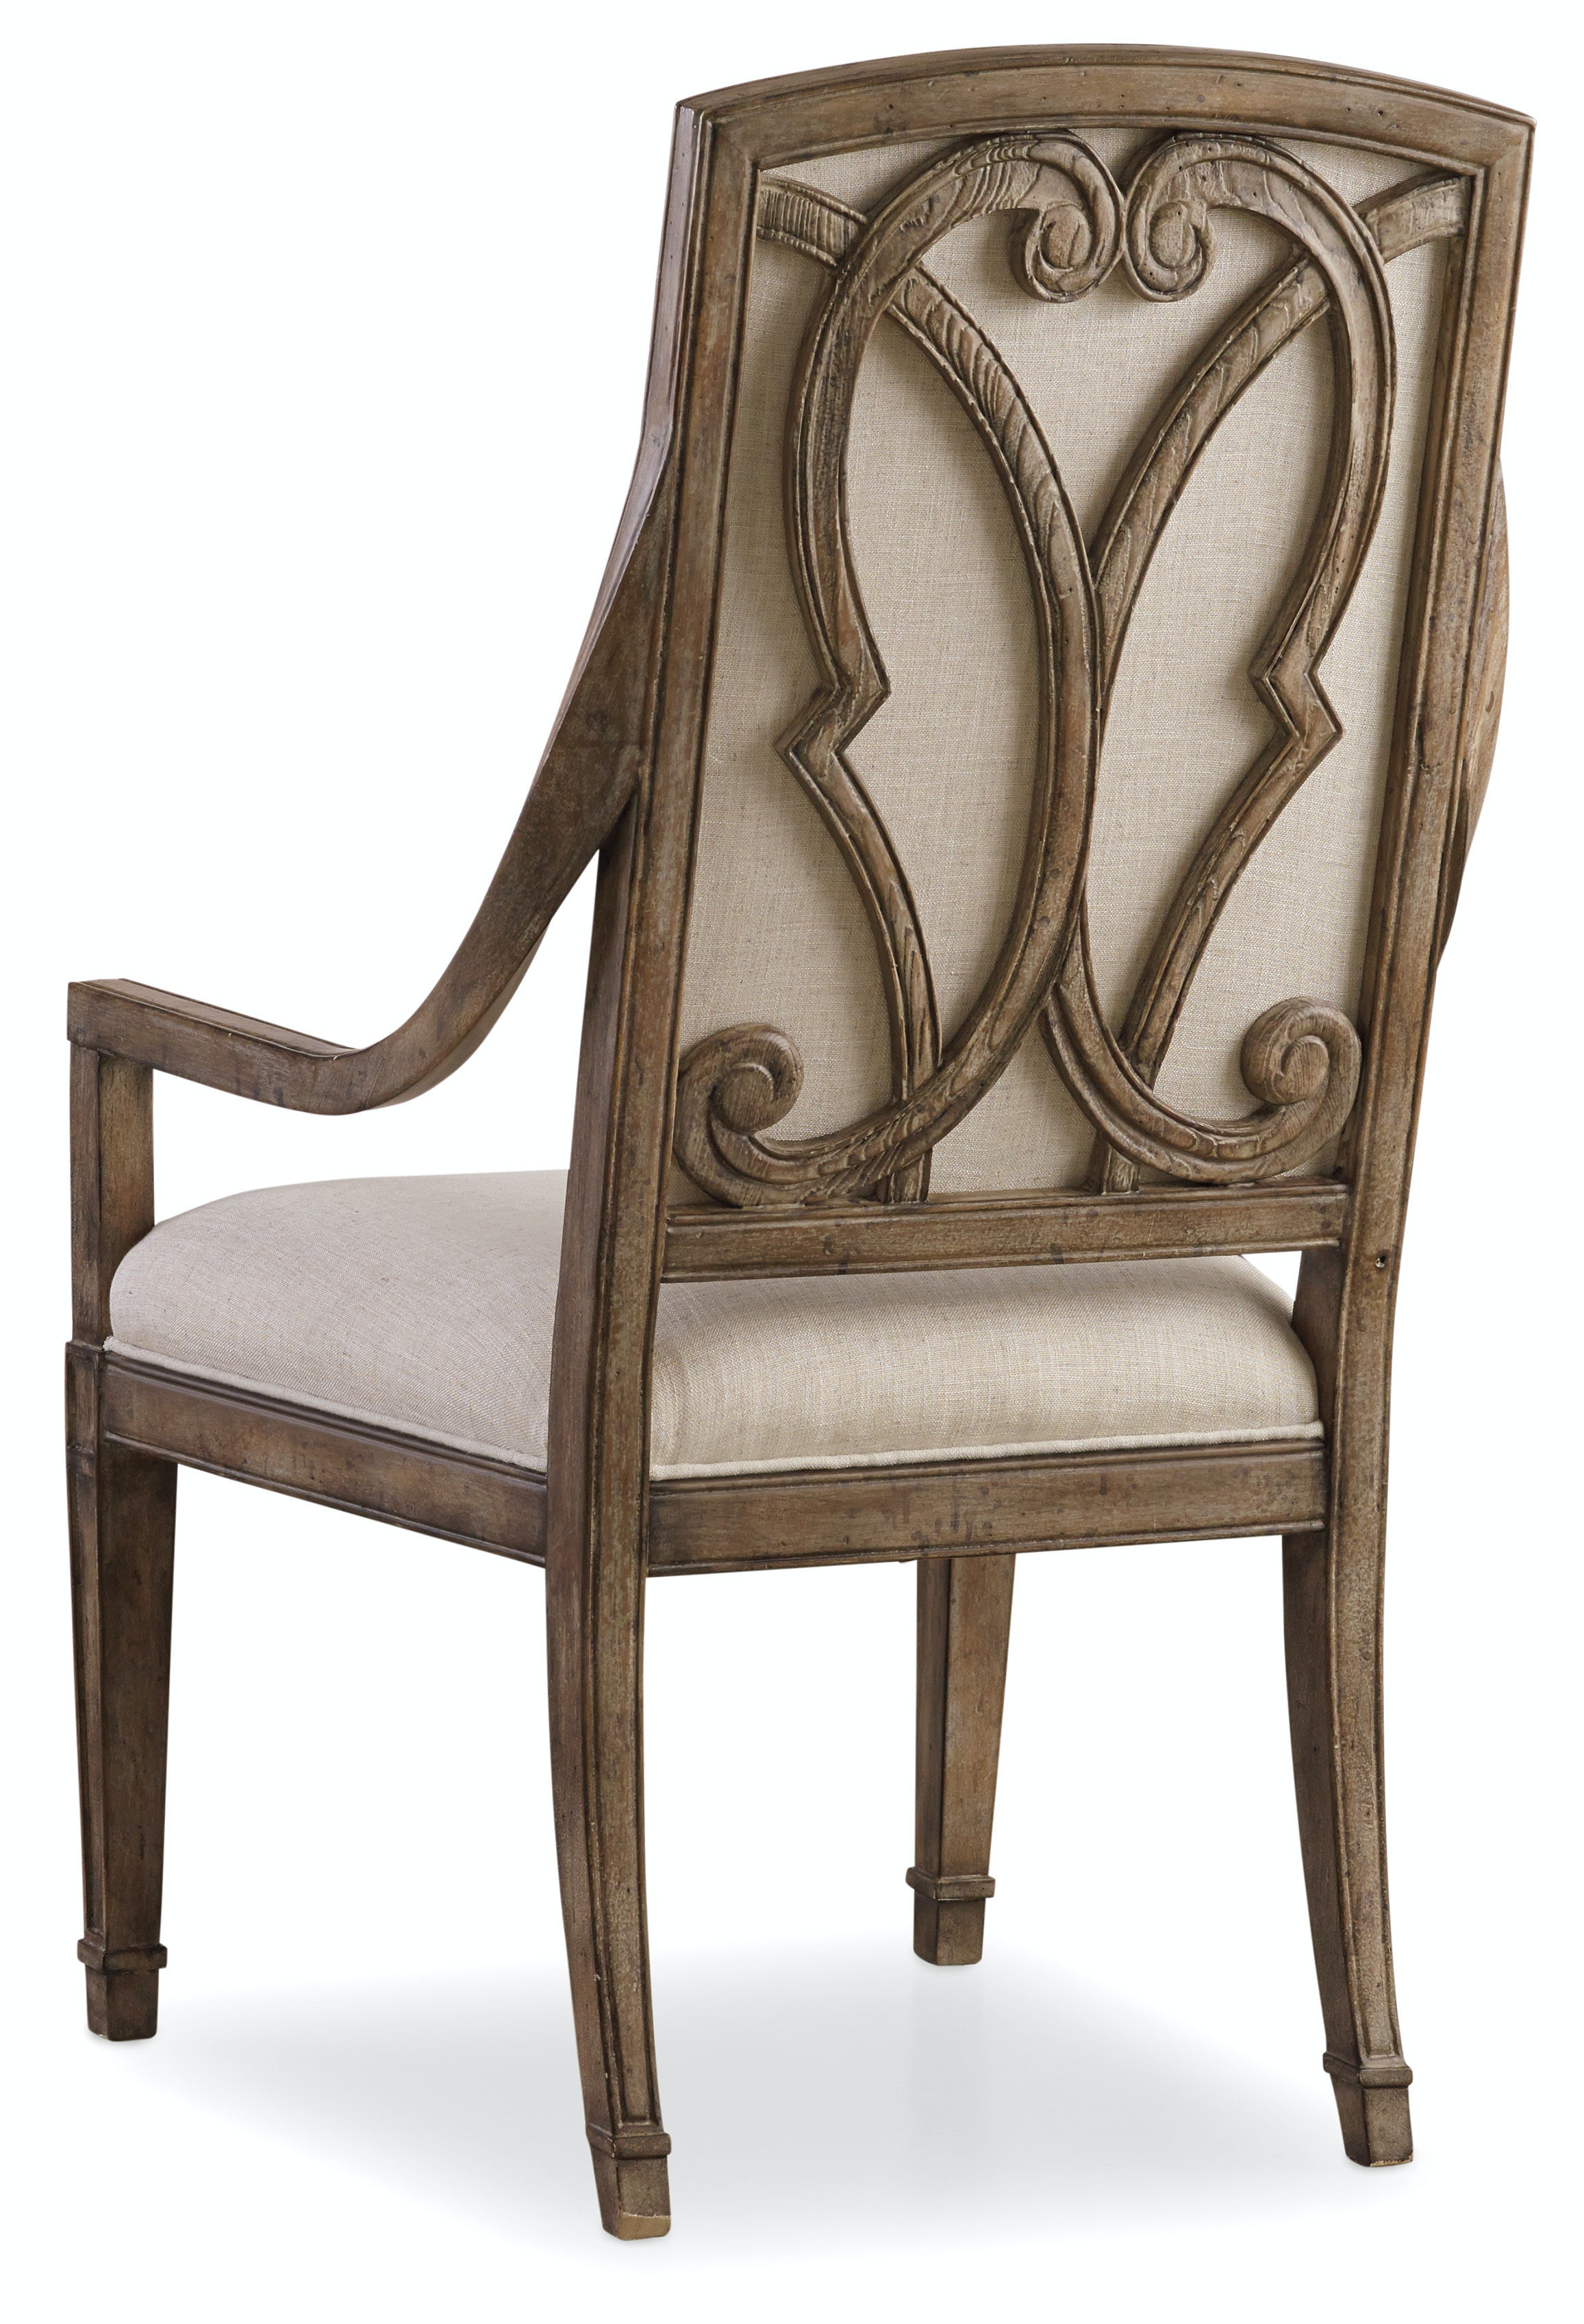 Hooker Furniture Solana Host Chair 5291-75501  sc 1 st  Hooker Furniture & Hooker Furniture Dining Room Solana Host Chair 5291-75501